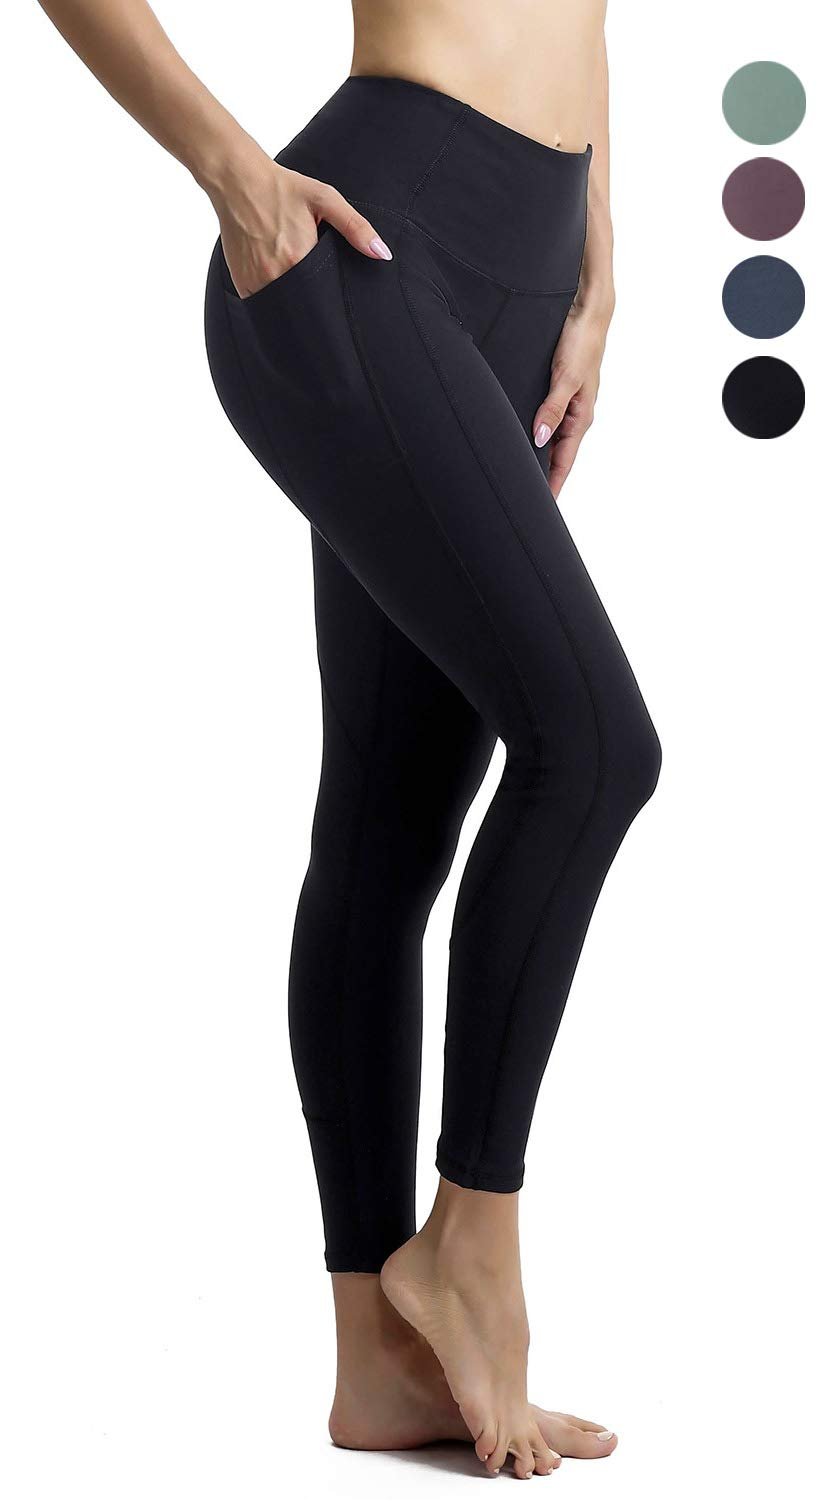 Persit Yoga Pants for Women High Waisted Black Leggings Tummy Control Athletic Running Workout Yoga Leggings with Pockets - Black - M